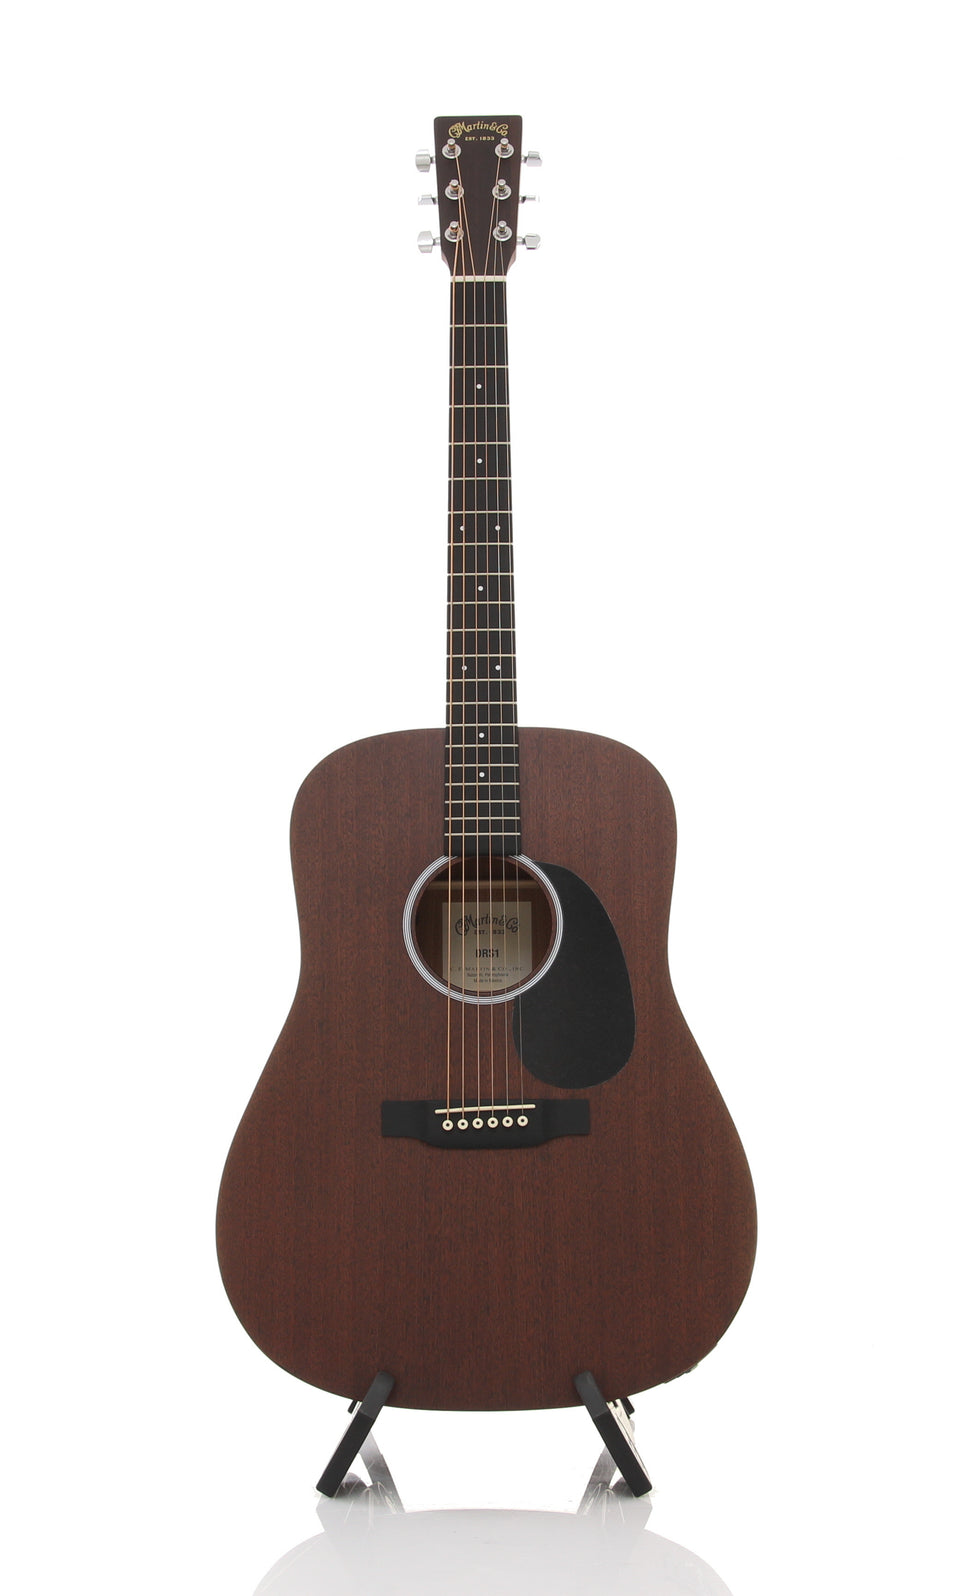 Martin DRS1 Sapele Top Sapele Back And Sides Acoustic/Electric Guitar - Translucent Cherry